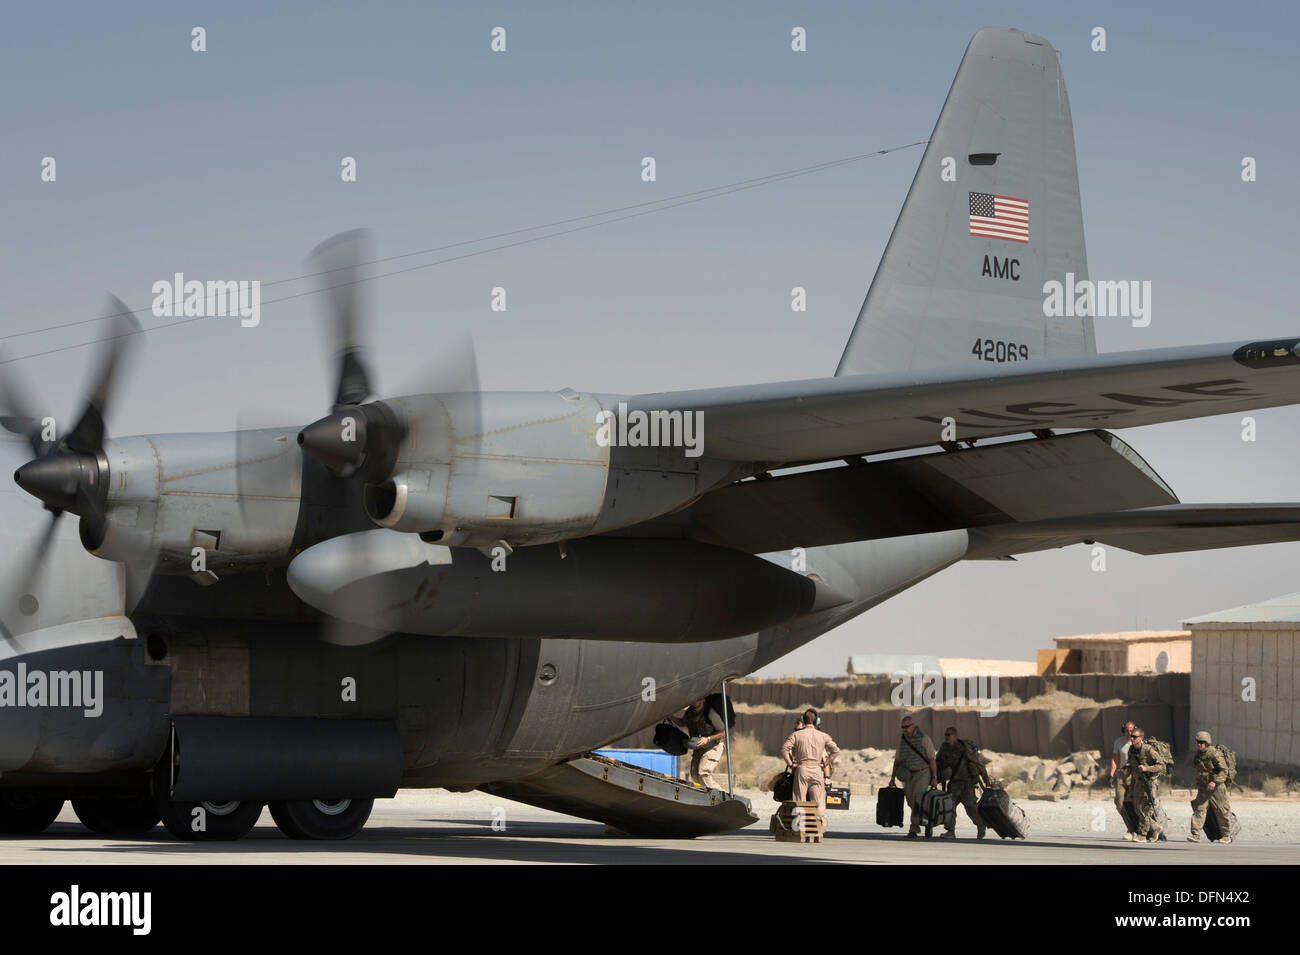 A number of final Department of Defense and military passengers board a 774th Expeditionary Airlift Squadron C-130 Hercules at Forward Operating Base Sharana, Paktika Province, Afghanistan, Sept. 28, 2013. This mission marked a retrograde milestone as the - Stock Image